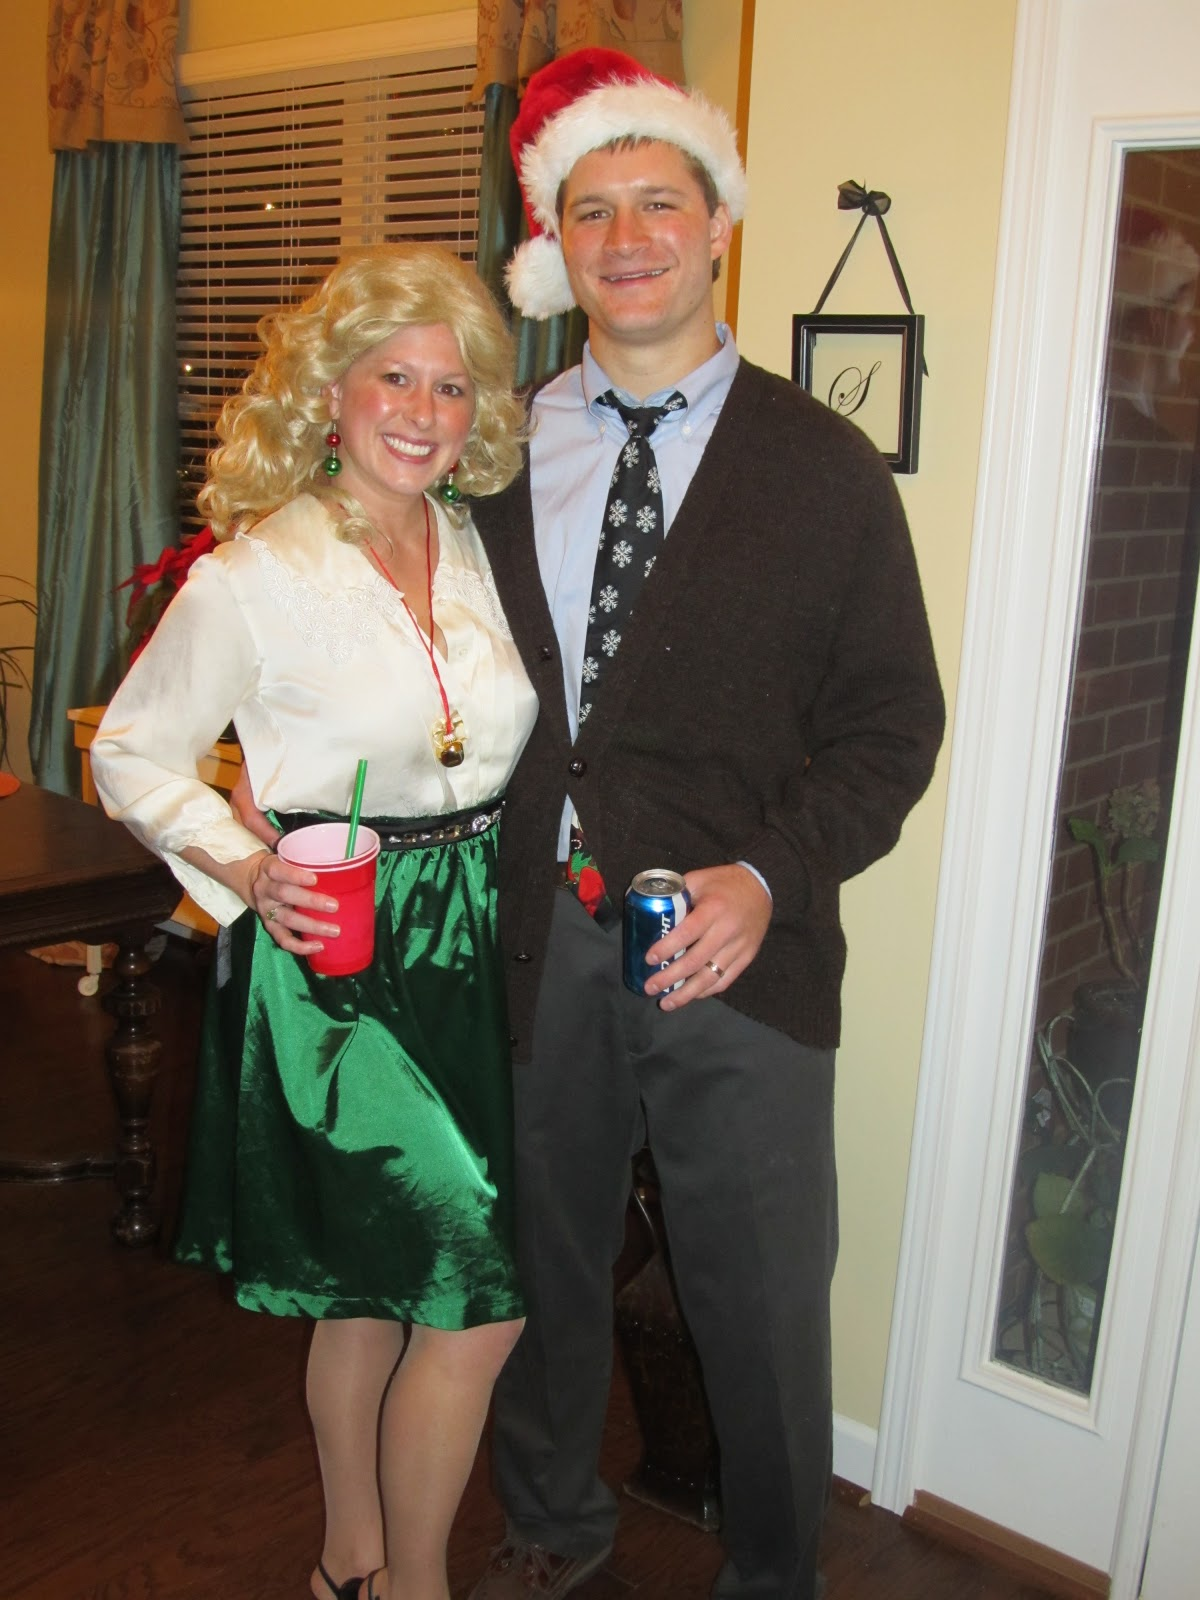 Dress up xmas party - The Theme This Year Was To Dress Up As Your Fav Christmas Vacation Character